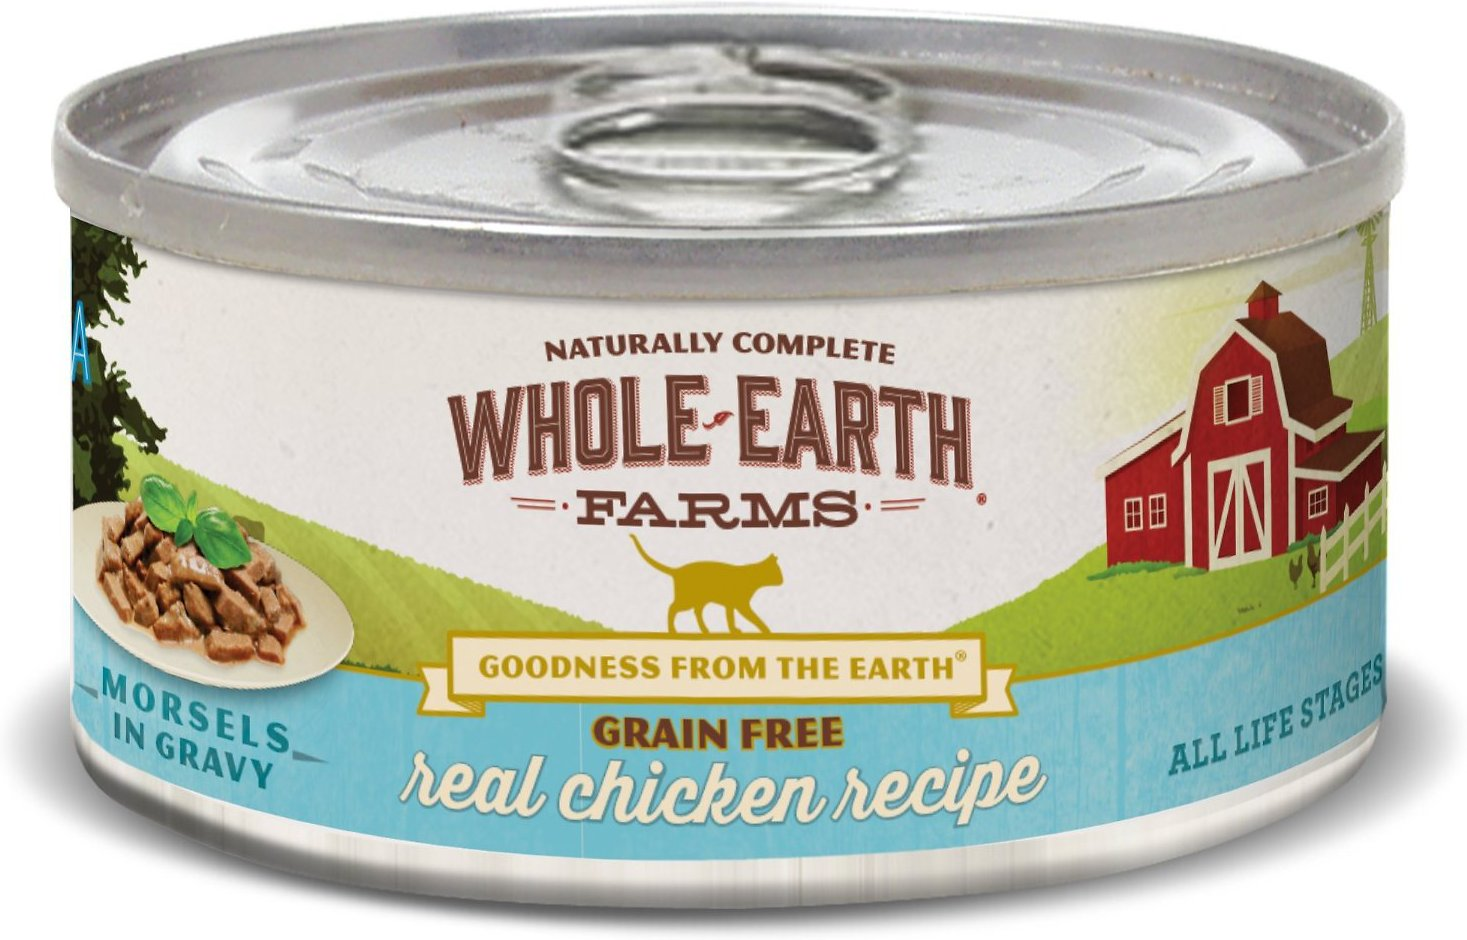 Whole Earth Farms Grain-Free Morsels in Gravy Chicken Recipe Canned Cat Food, 5-oz